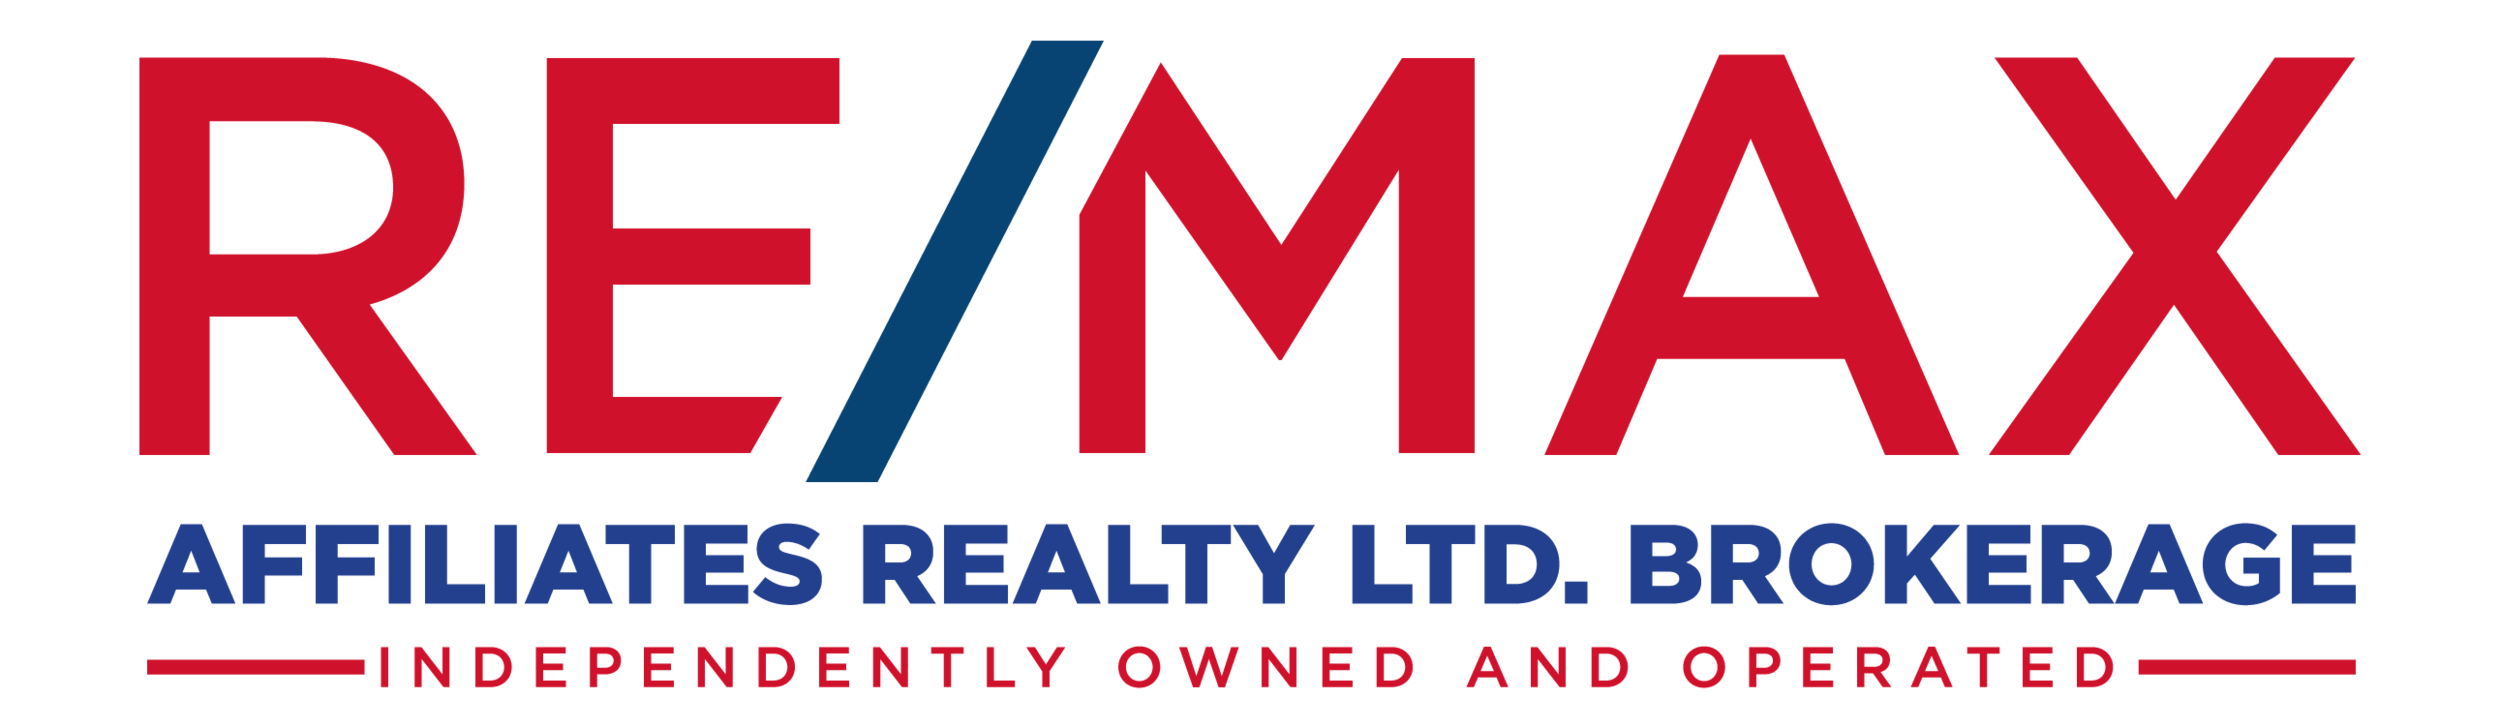 Remax Affiliates Logo 2 JPEG (2).jpg